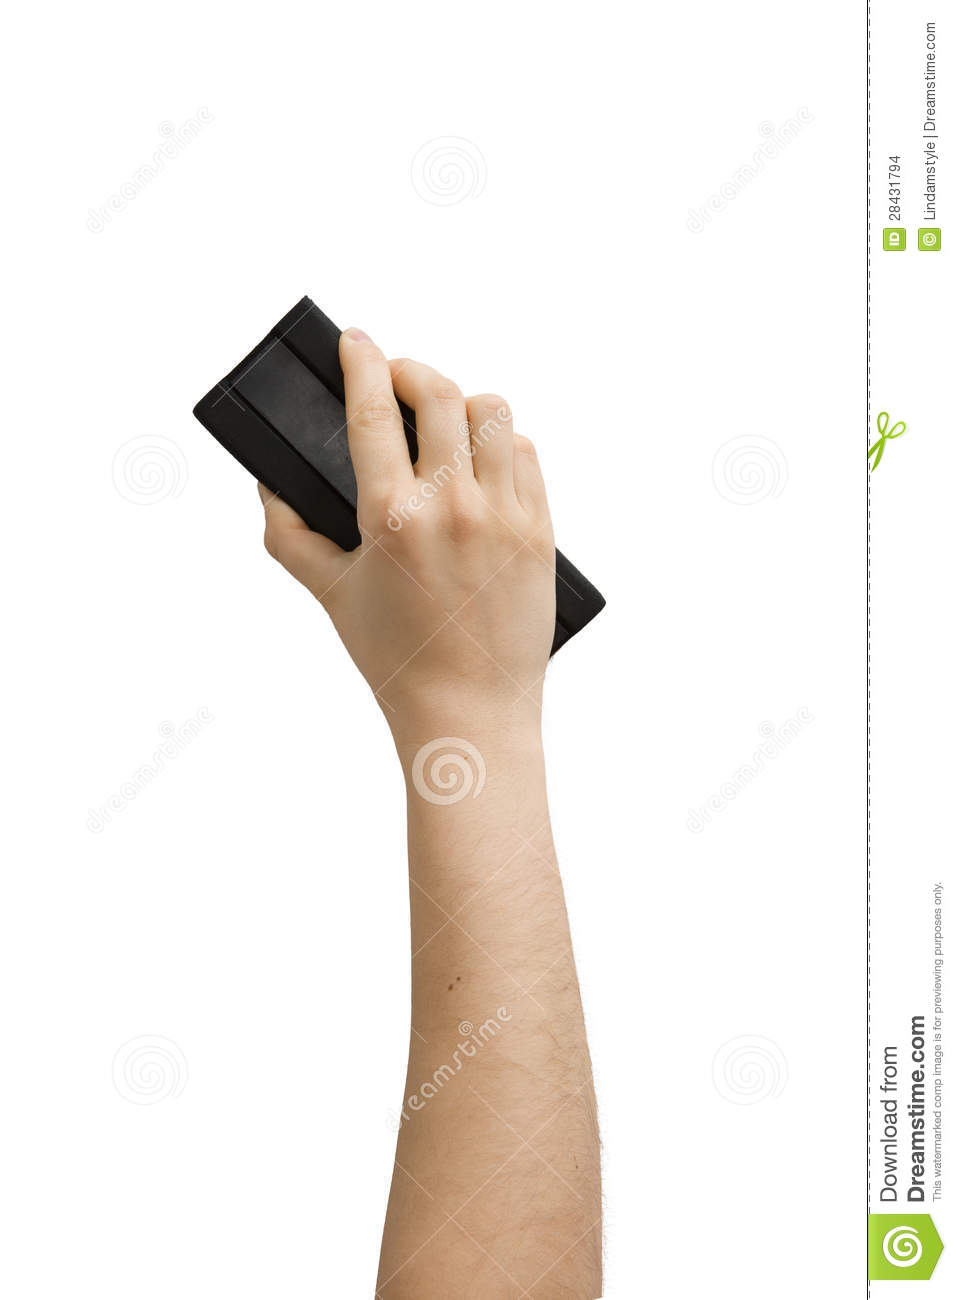 2 765 Hand Eraser Photos Free Royalty Free Stock Photos From Dreamstime Download now the free icon pack 'hand drawn'. dreamstime com